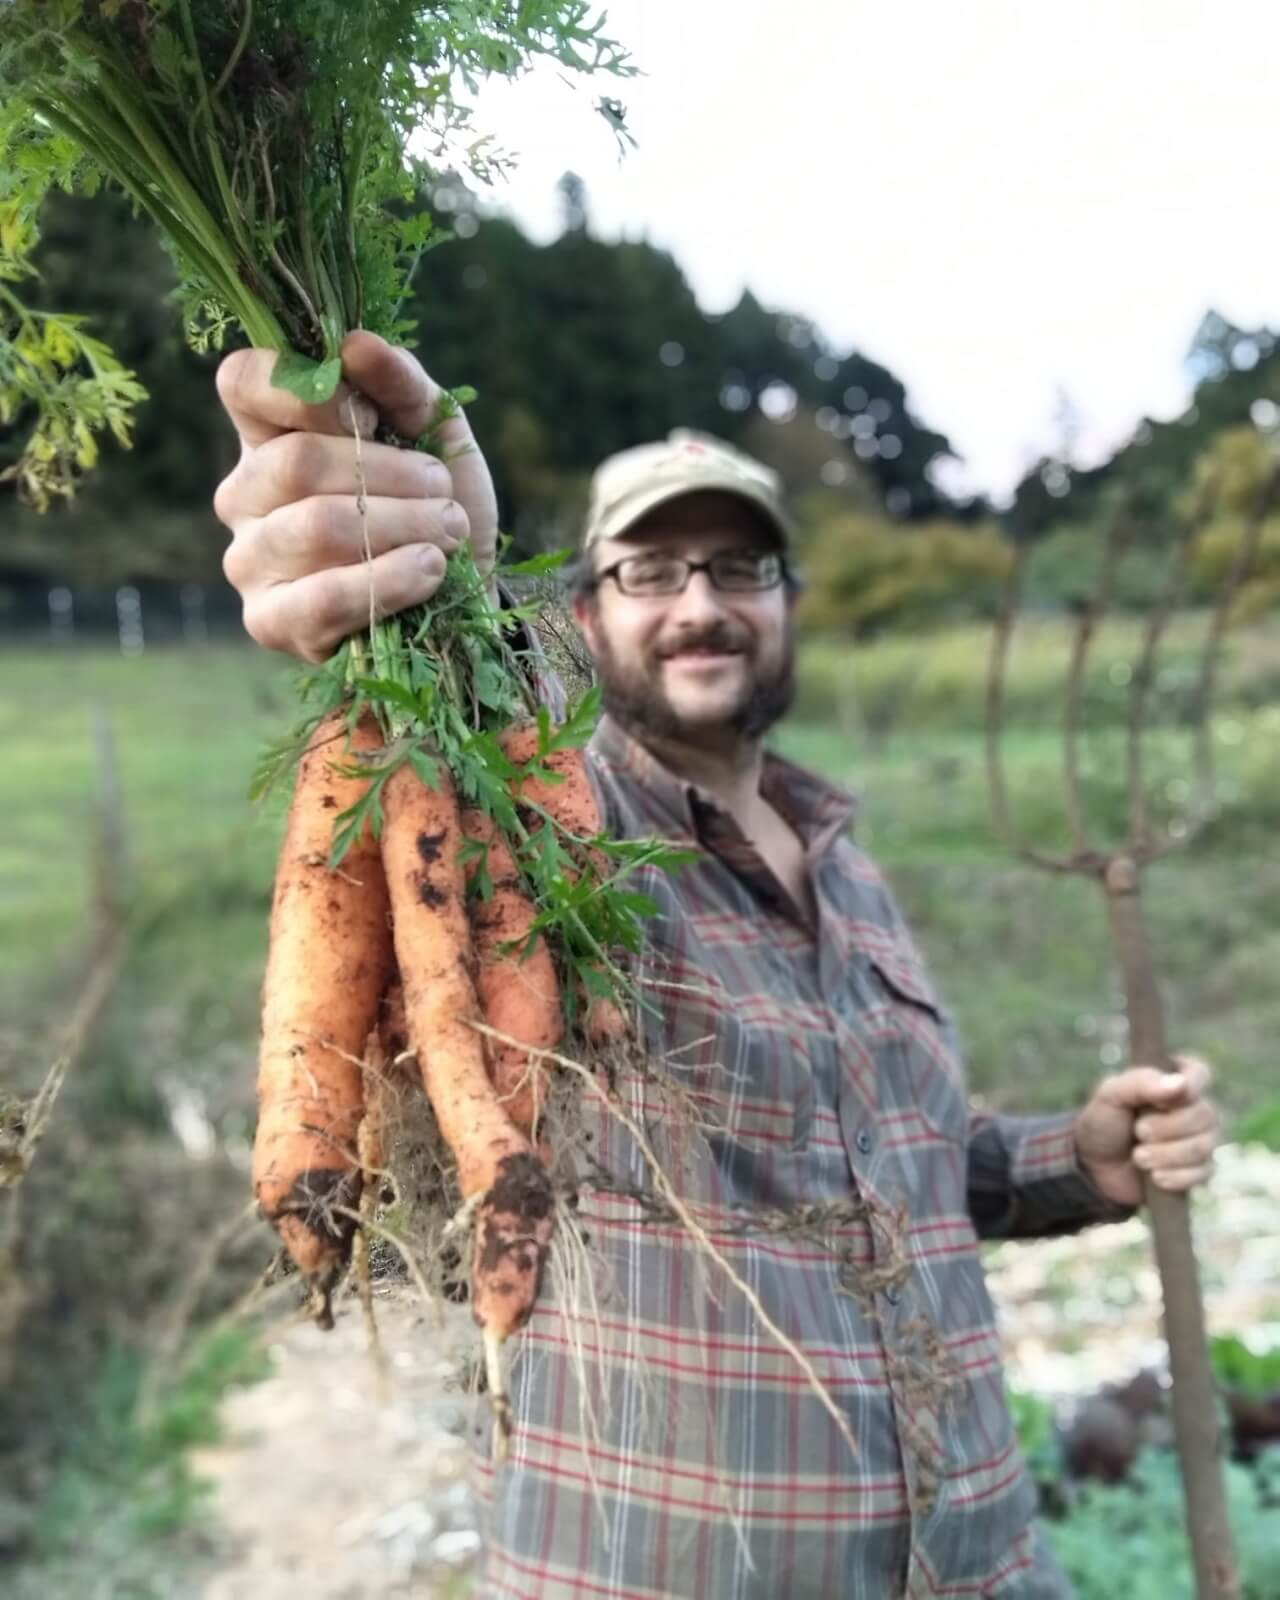 Byron with carrots